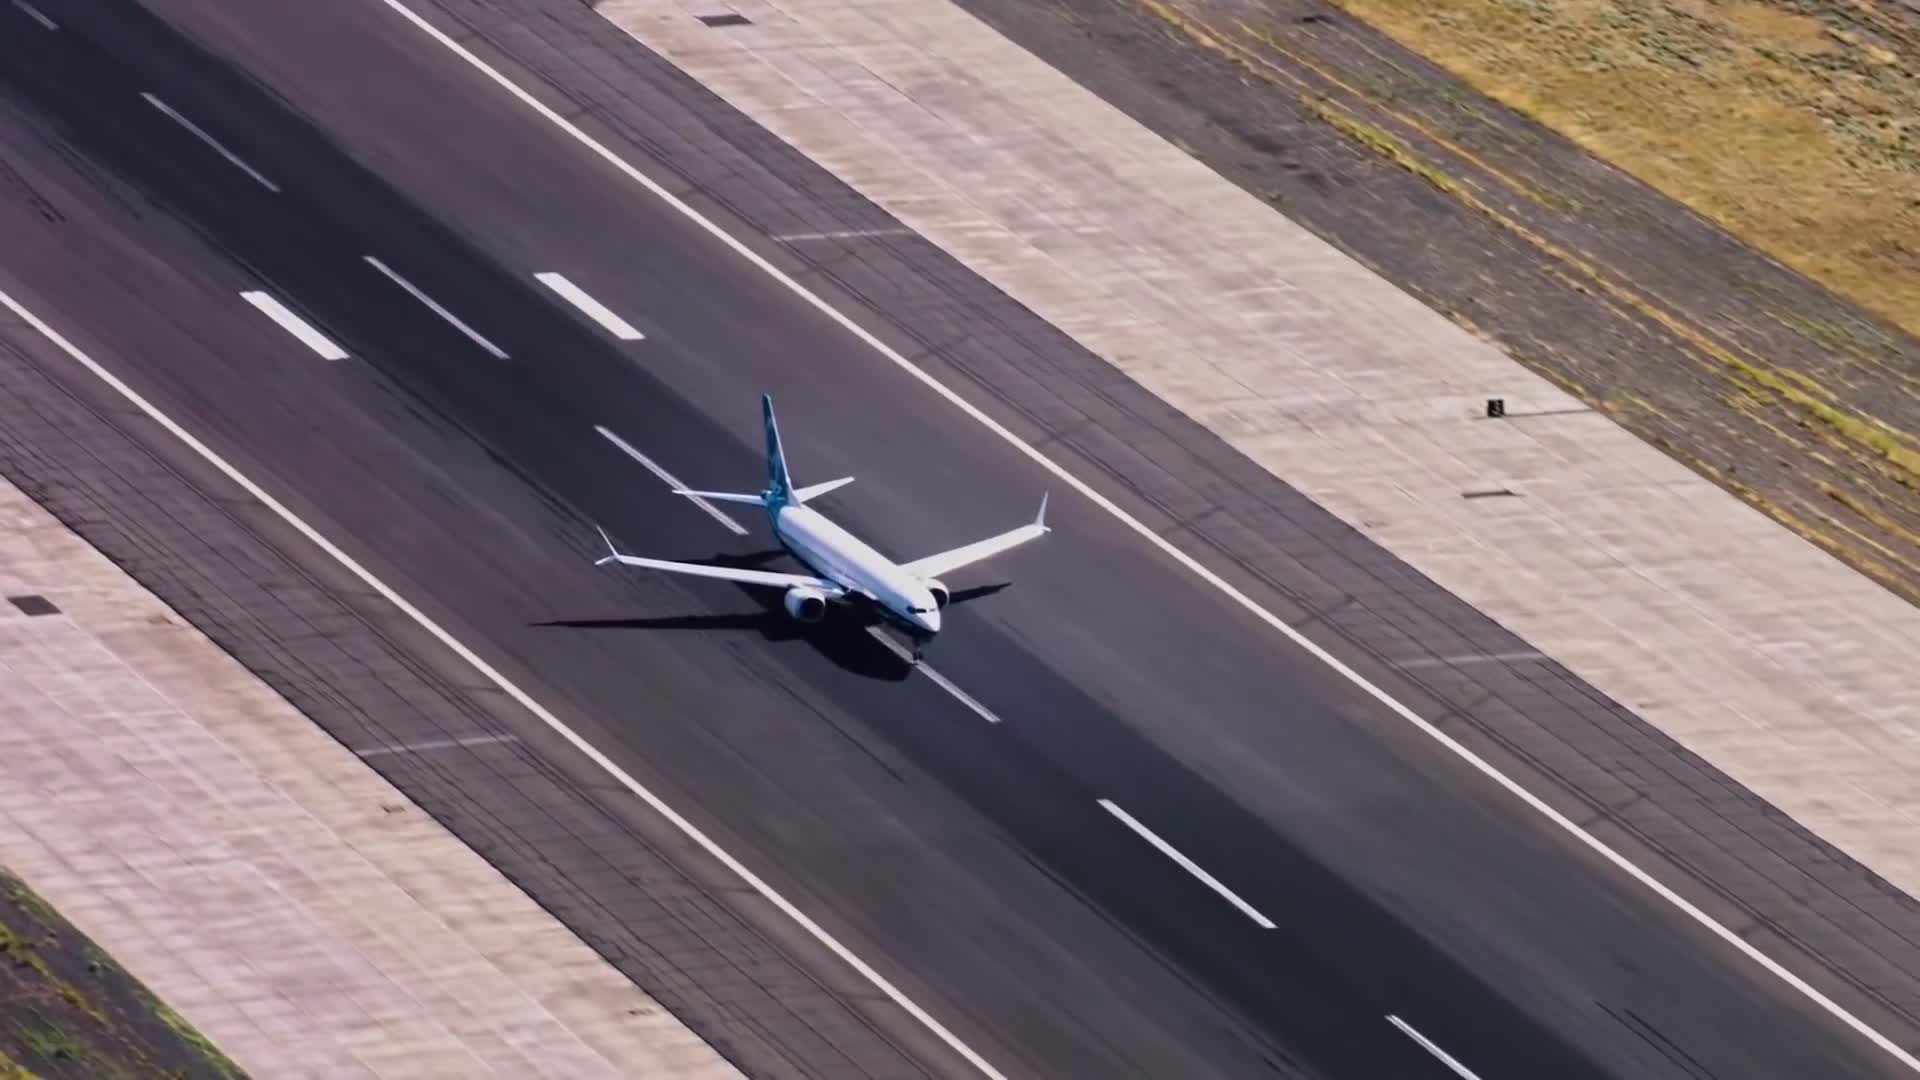 Boeing 727, Boeing 737 max, Flight speed, aircraft speed, airliner, aviation, jet engine, supersonic, turbofan, why do we fly so slowly, 787 dreamliner, vertical takeoff GIFs